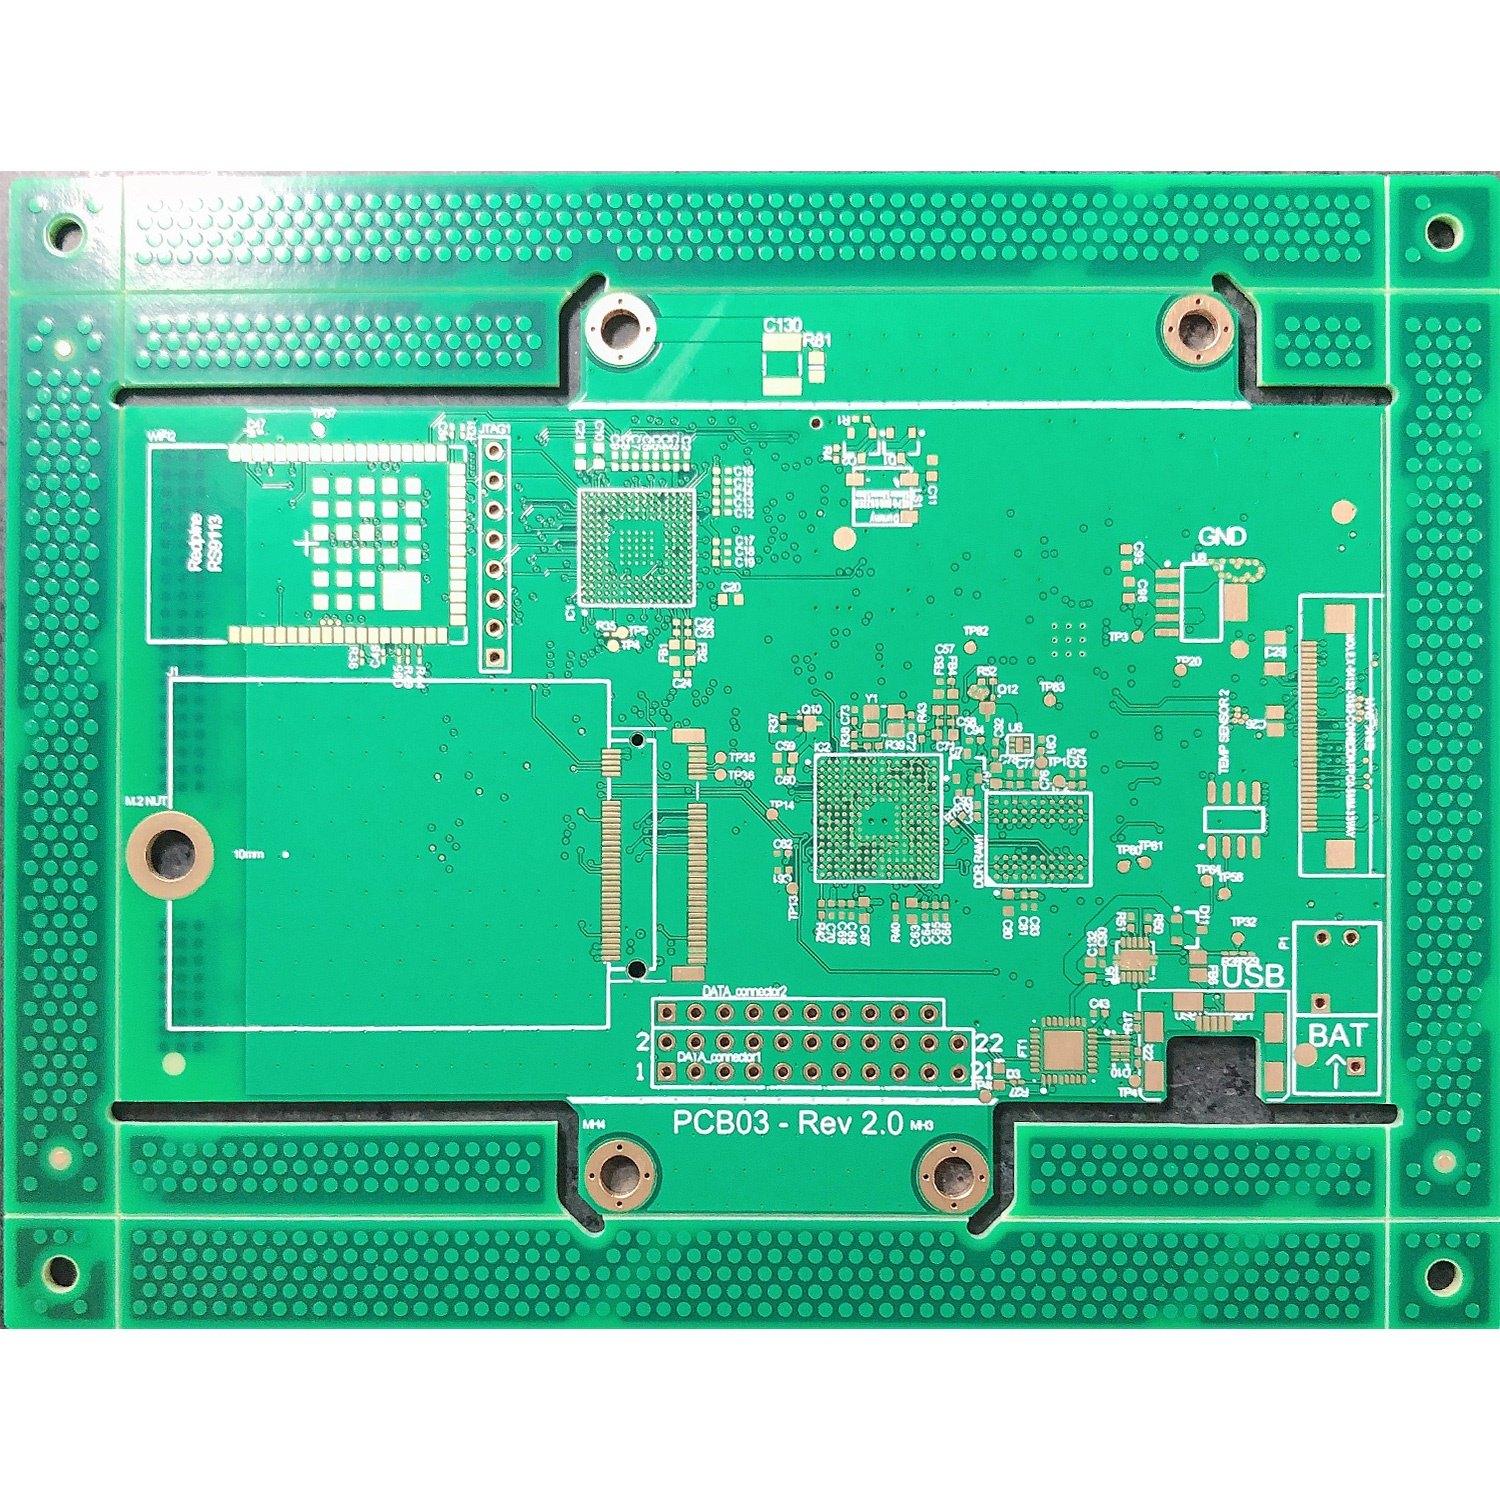 8 layer BGA board